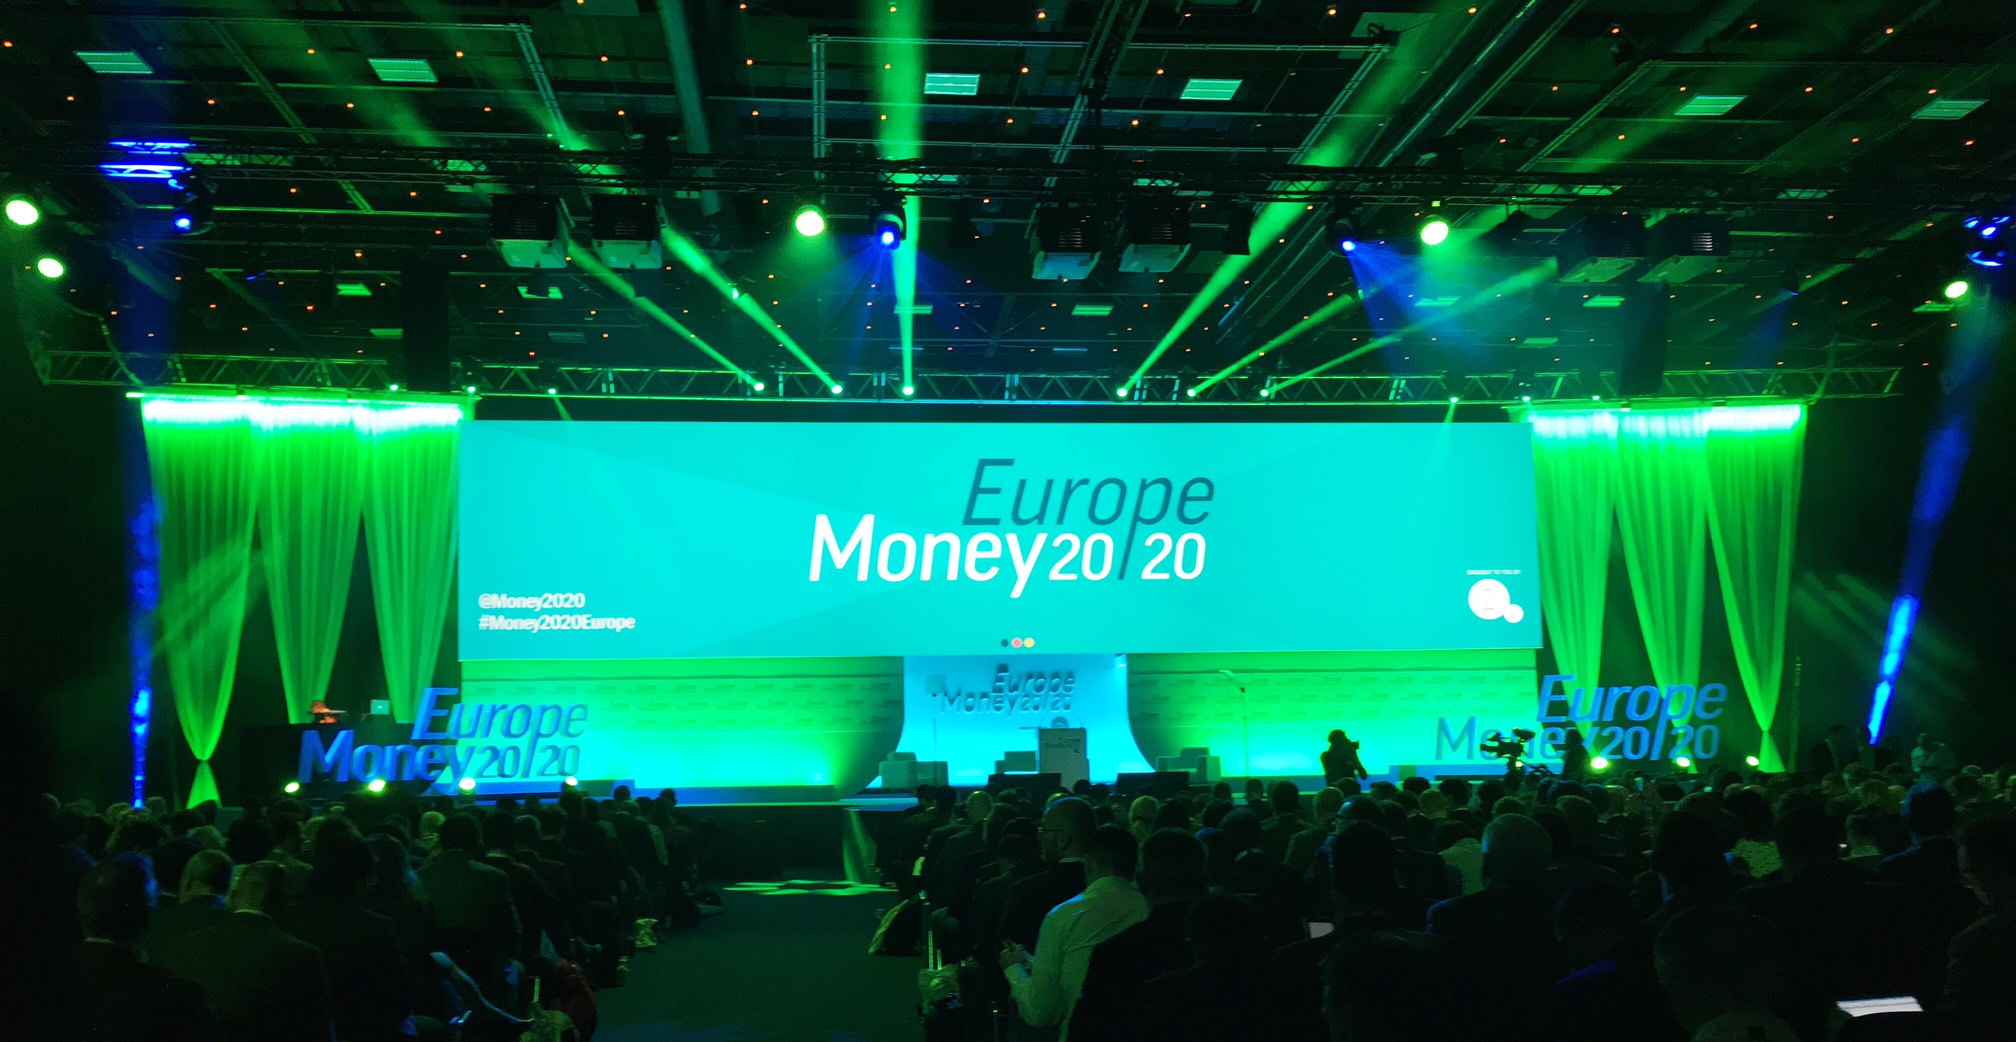 8 things we learned at Money20/20